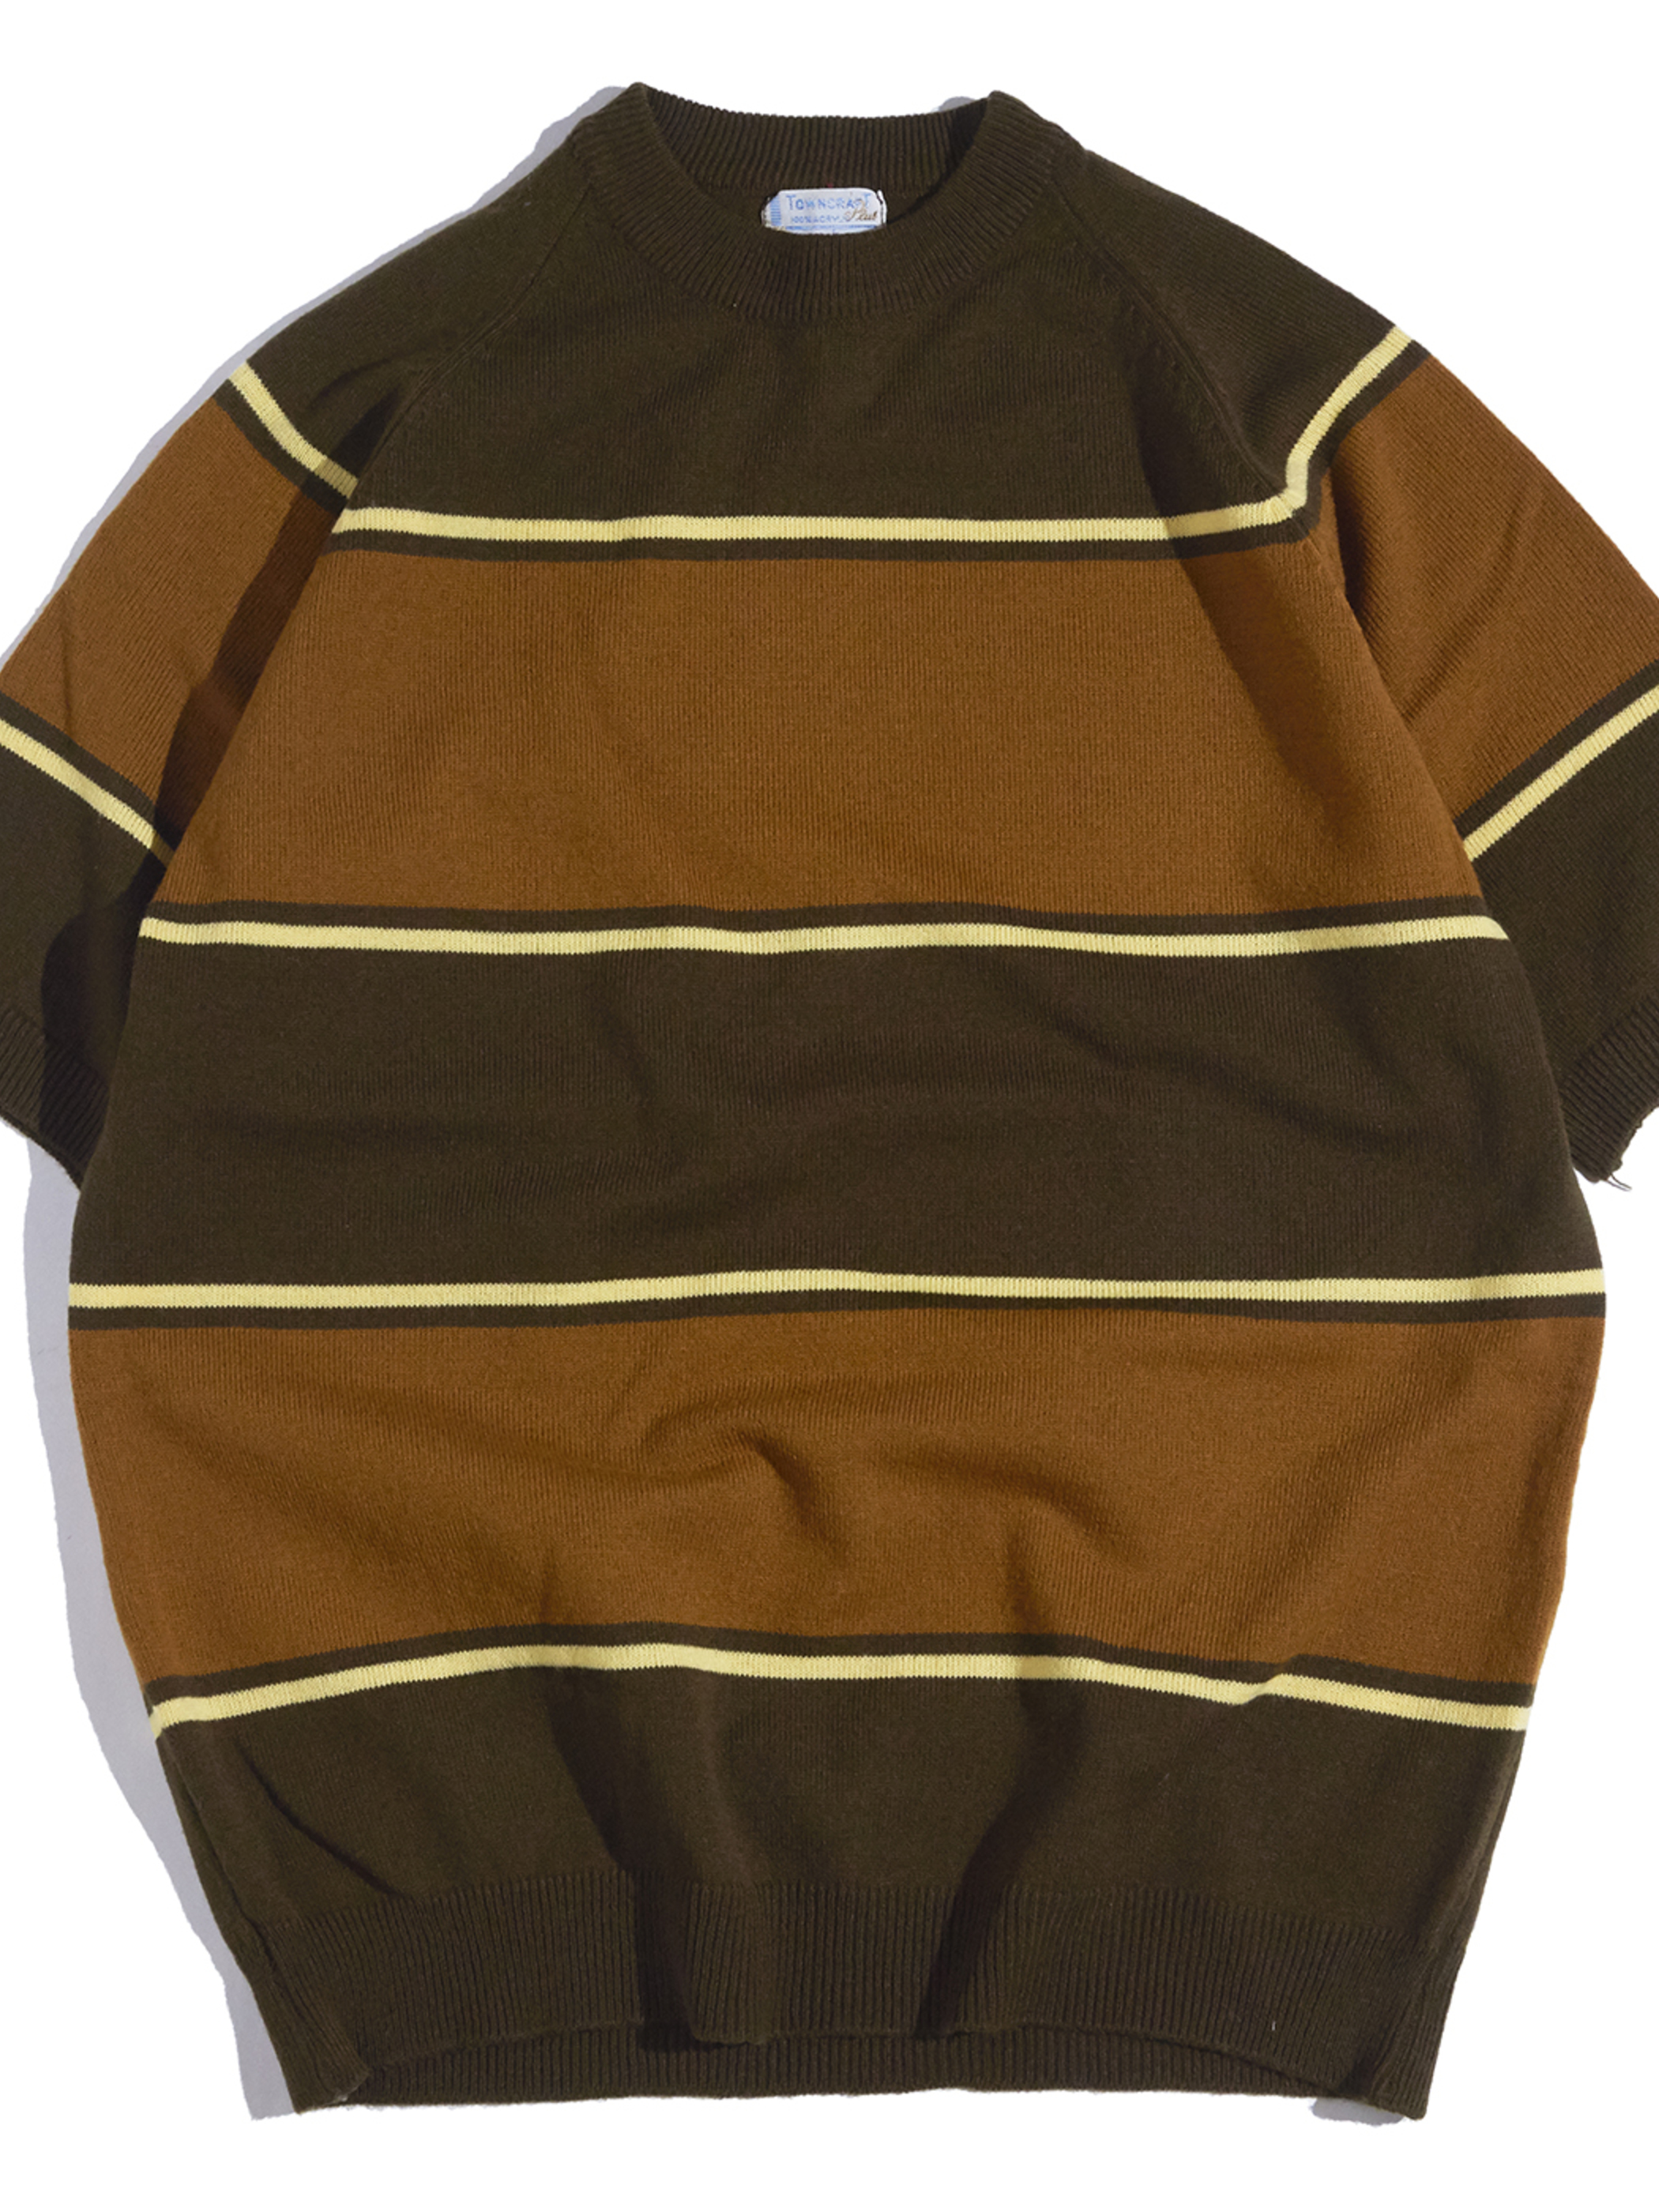 "1970s ""TOWN CRAFT"" s/s acrylic border knit -BROWN-"